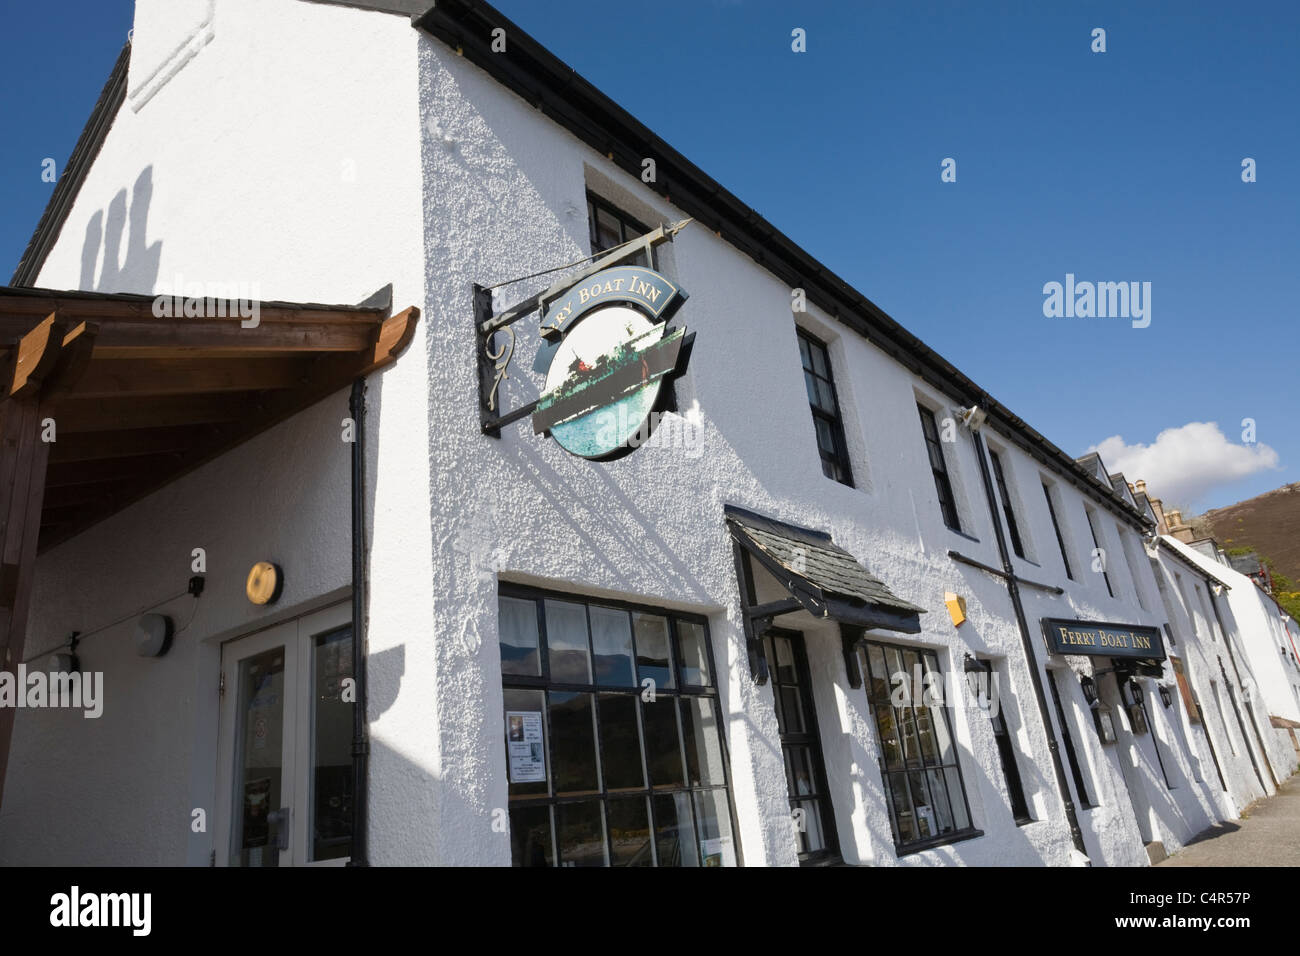 Ferry Boat Inn, Ullapool, Wester Ross, Northern Highlands, Scotland - Stock Image